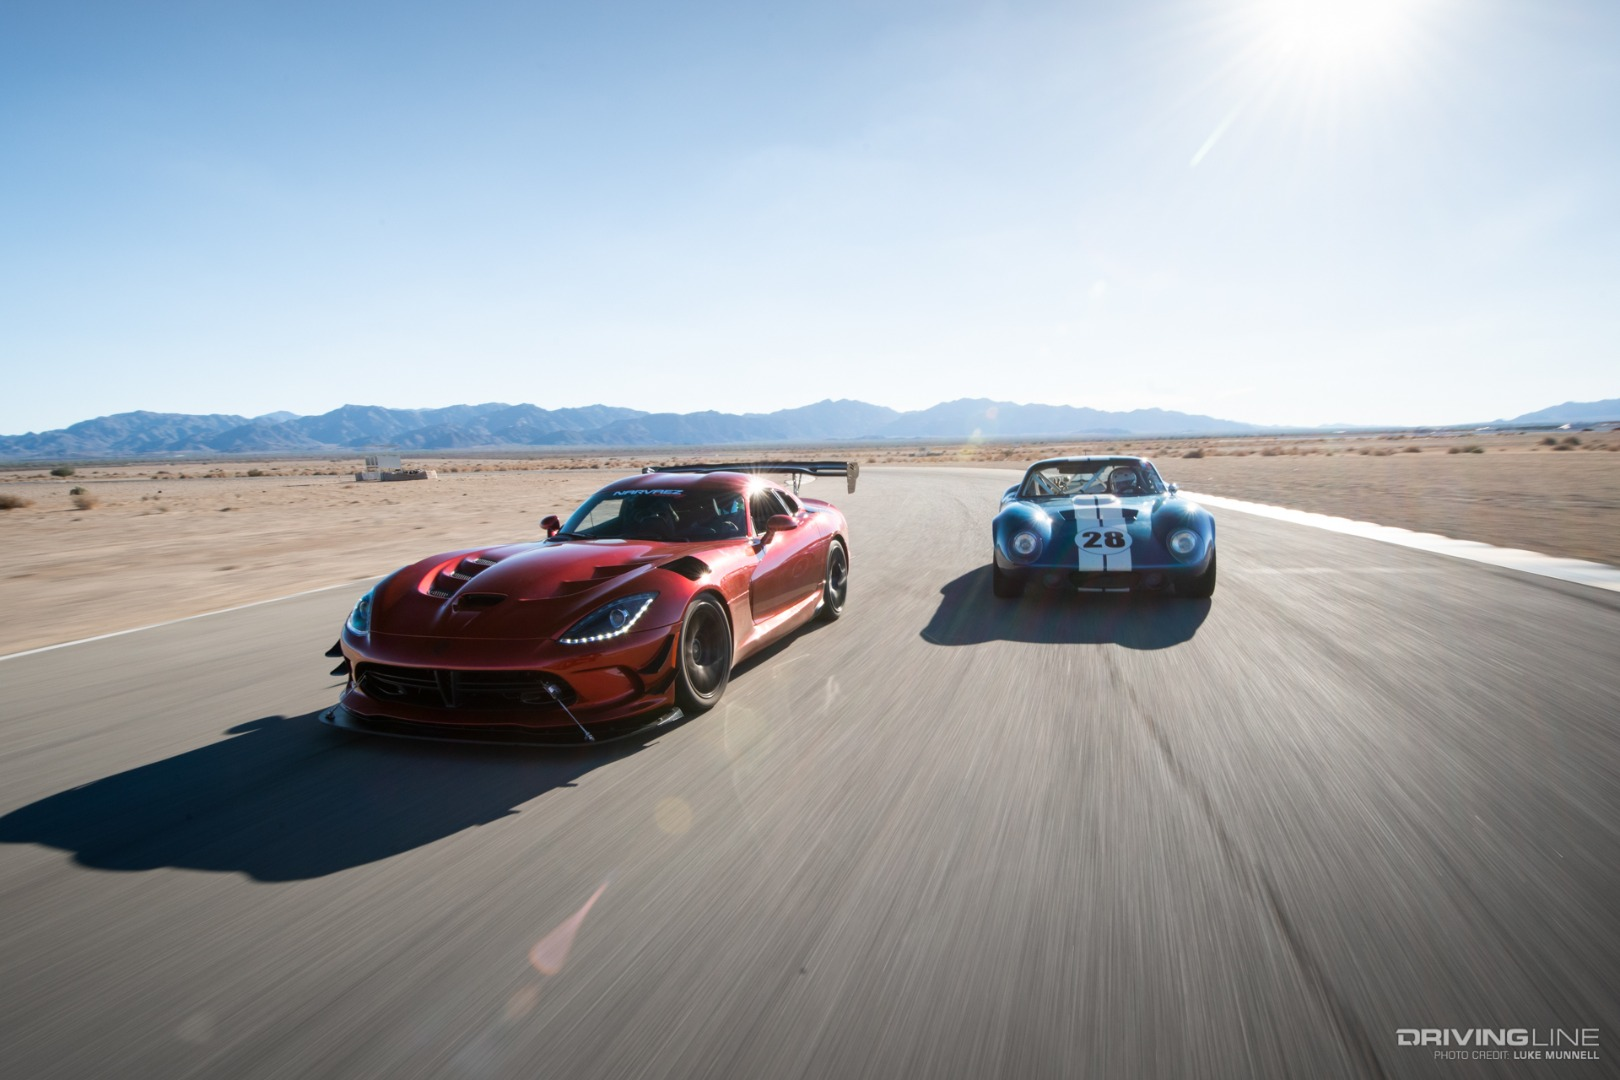 Orange Viper and Blue Shelby Cobra racing on a track